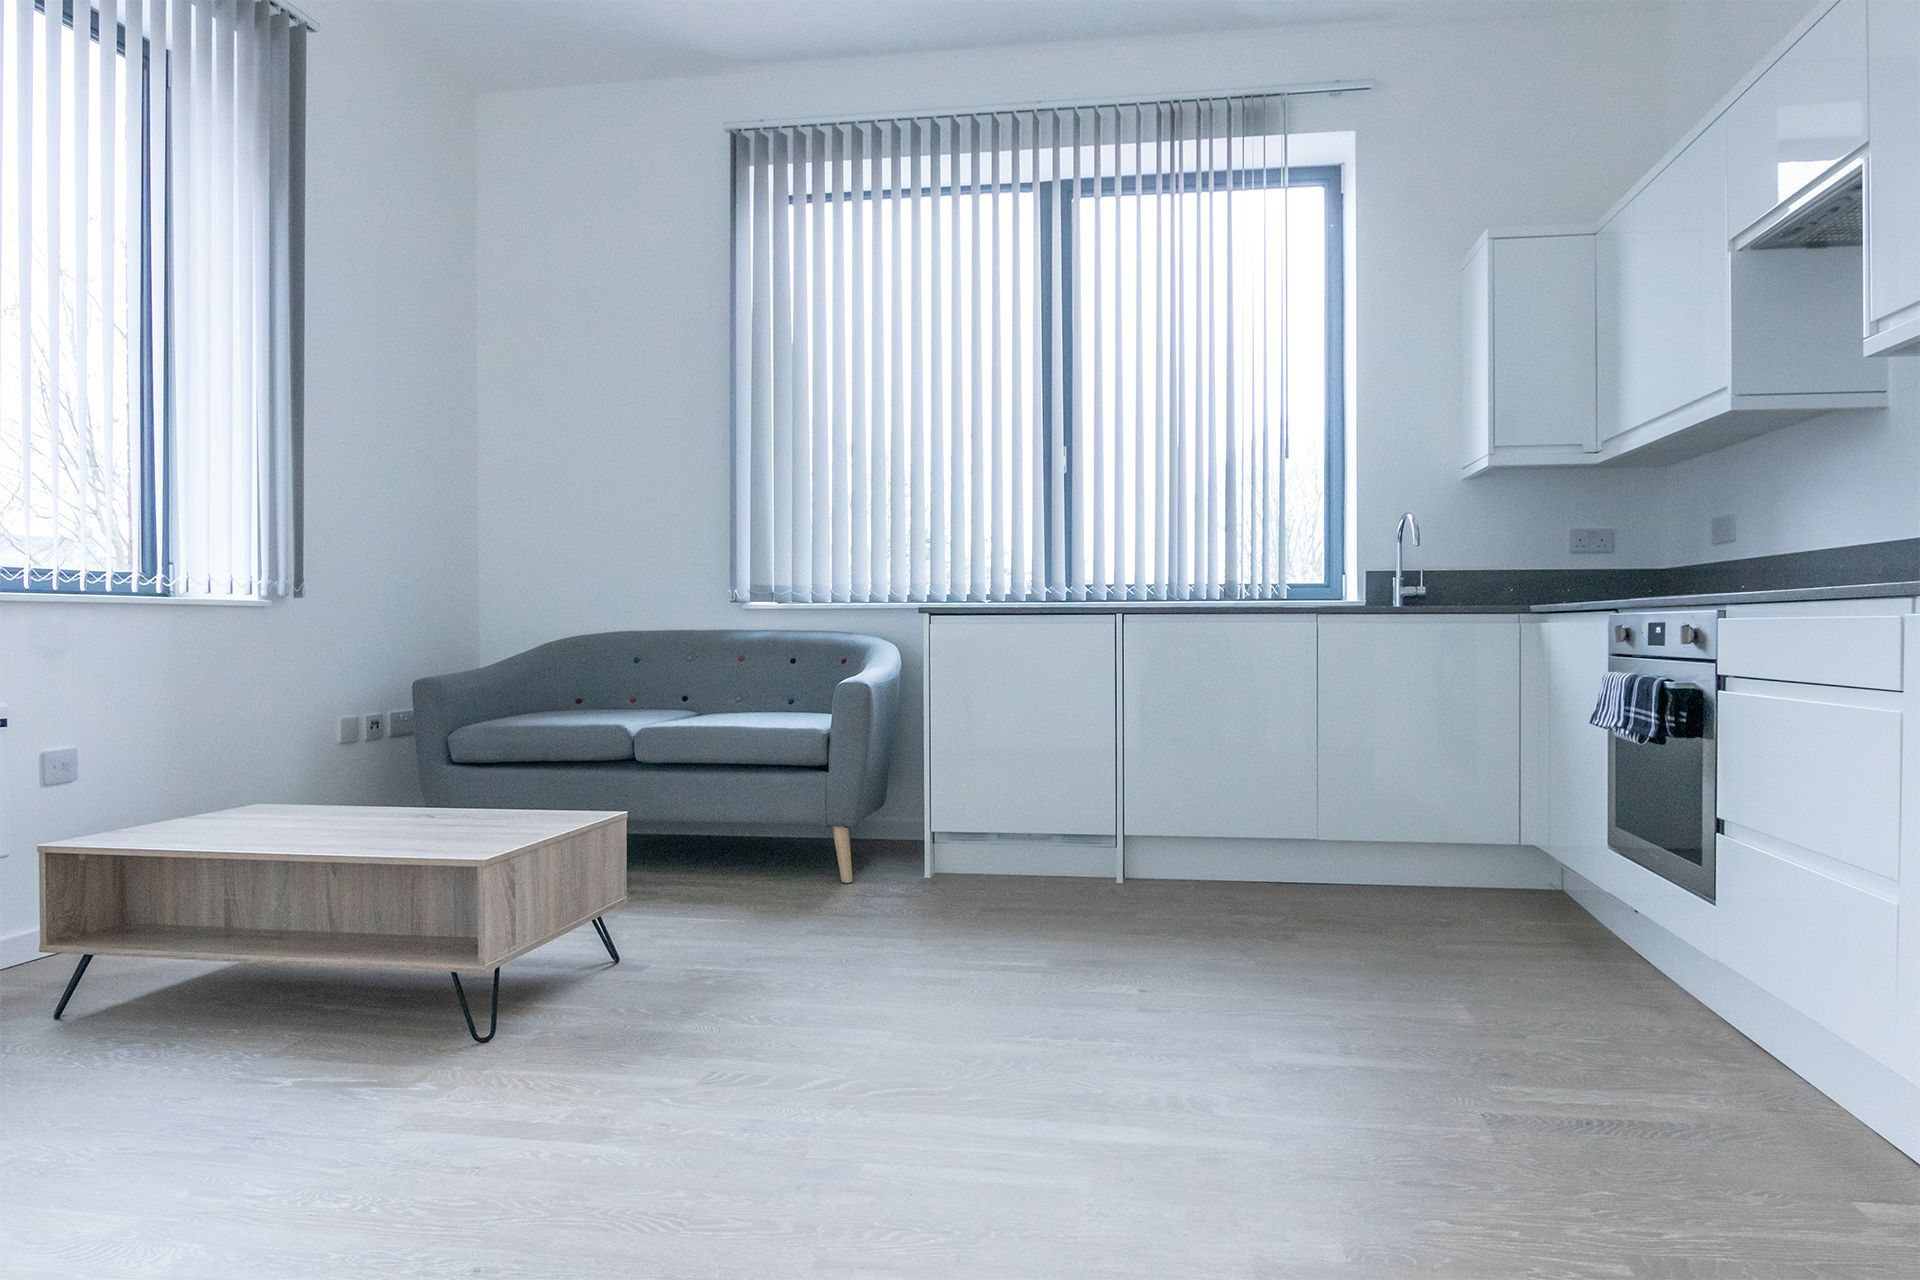 Studio apartment to rent in London VIL-PI-0013